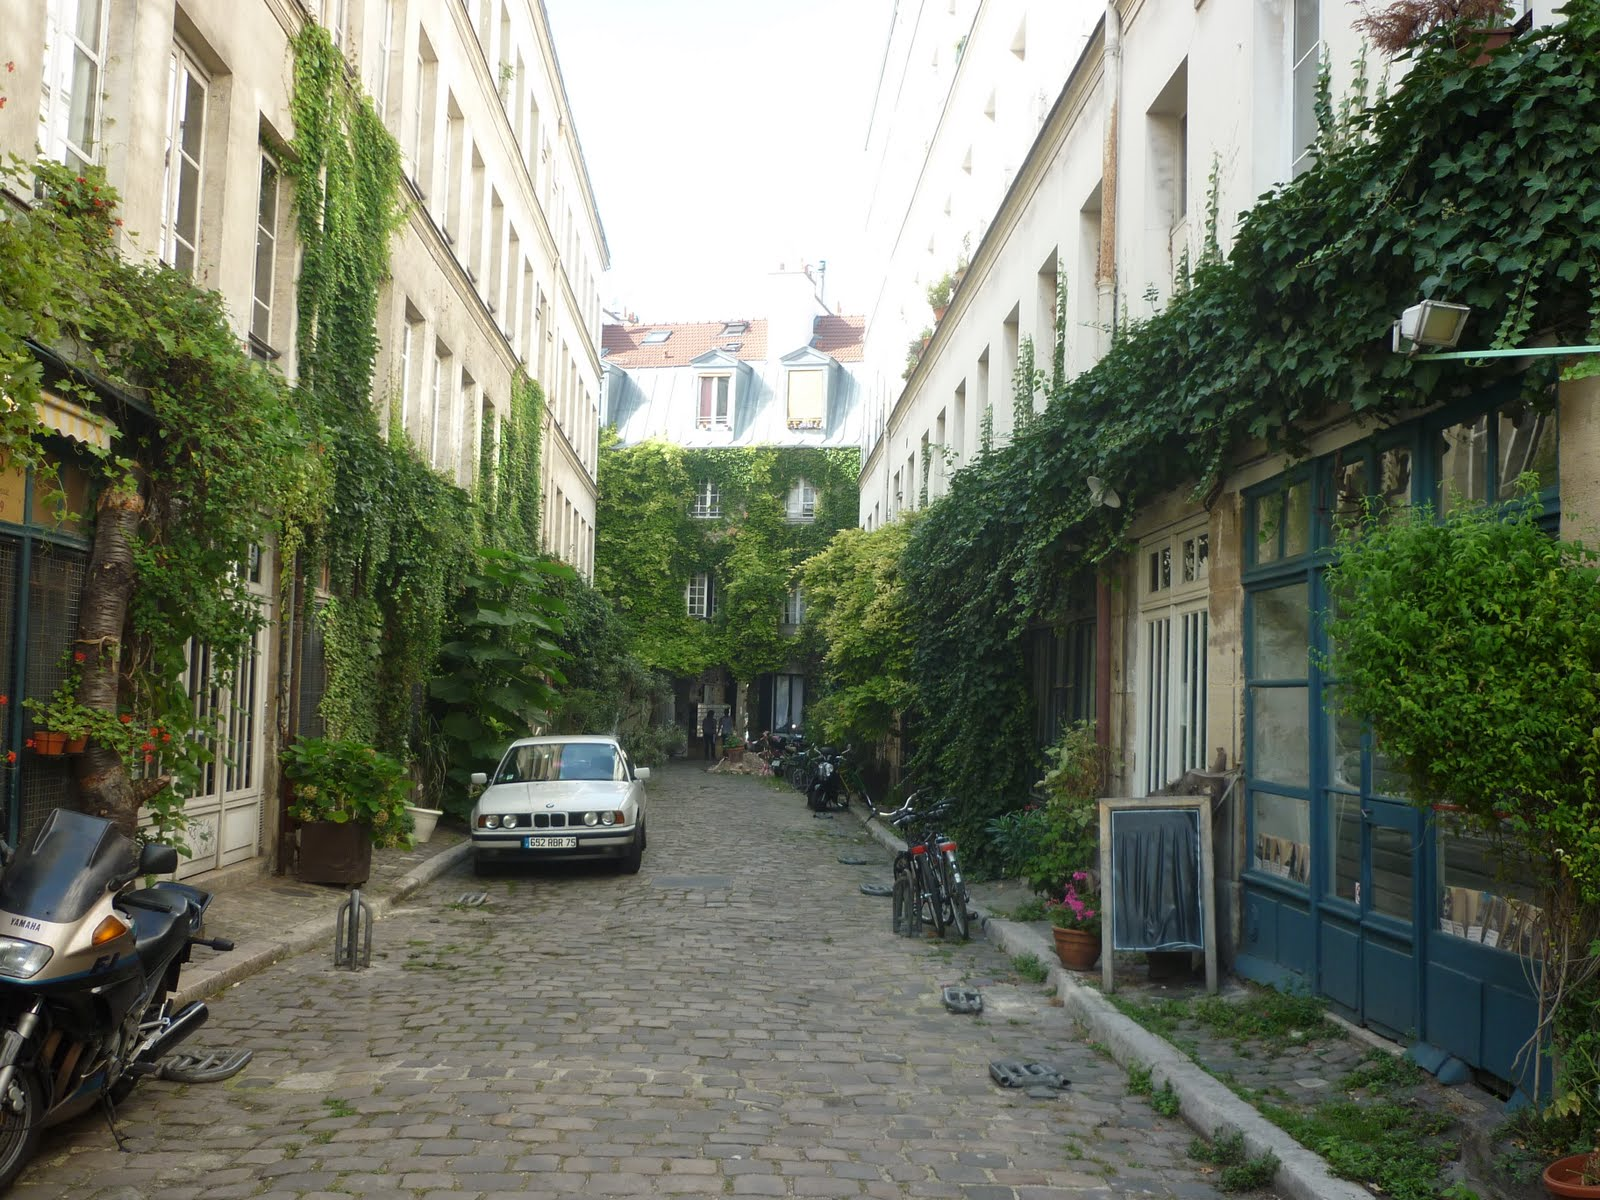 Dr j j visite paris 11 me arrondissement for Meubles faubourg saint antoine